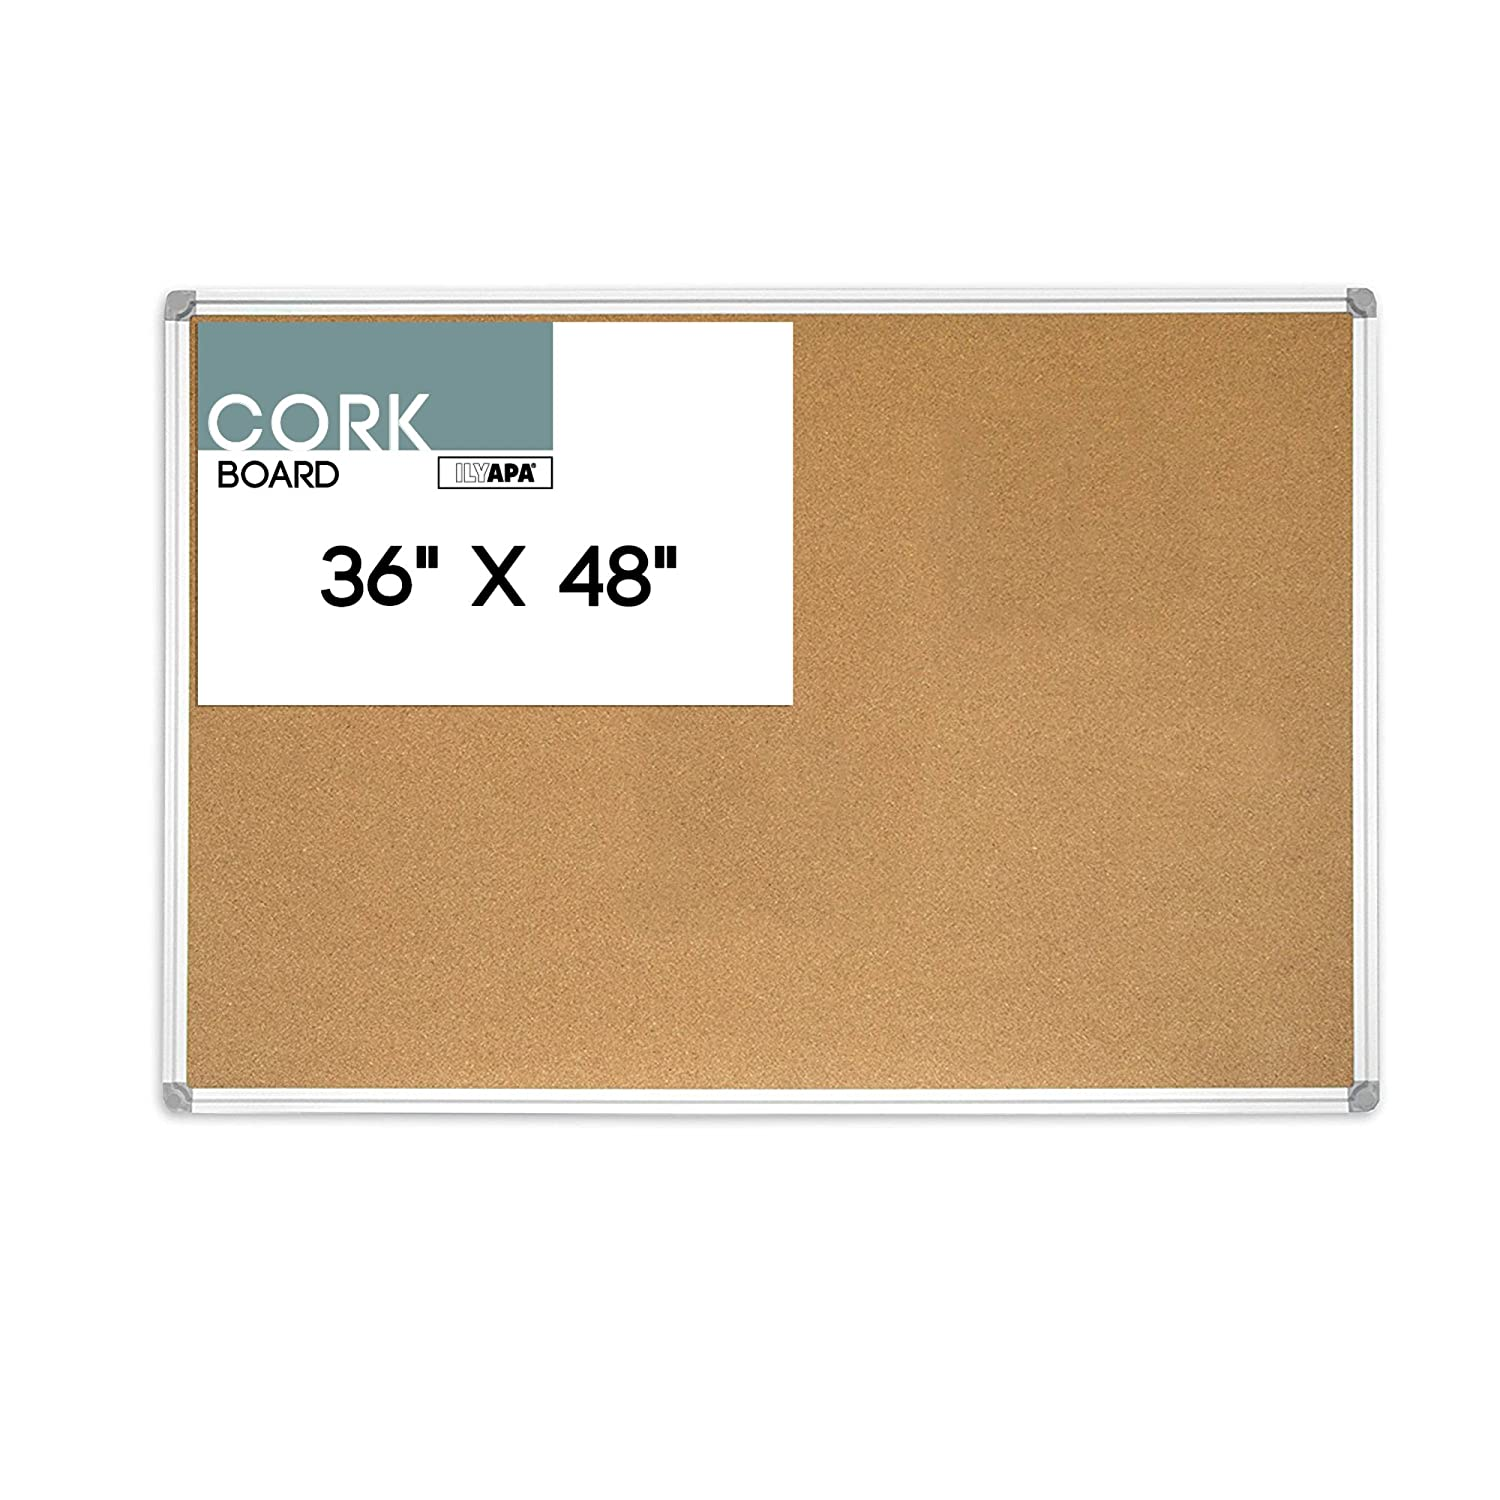 36 x 48 Inch Cork Board – Aluminum Framed Large Corkboard Bulletin Board for Home, Office or Dorm Ilyapa